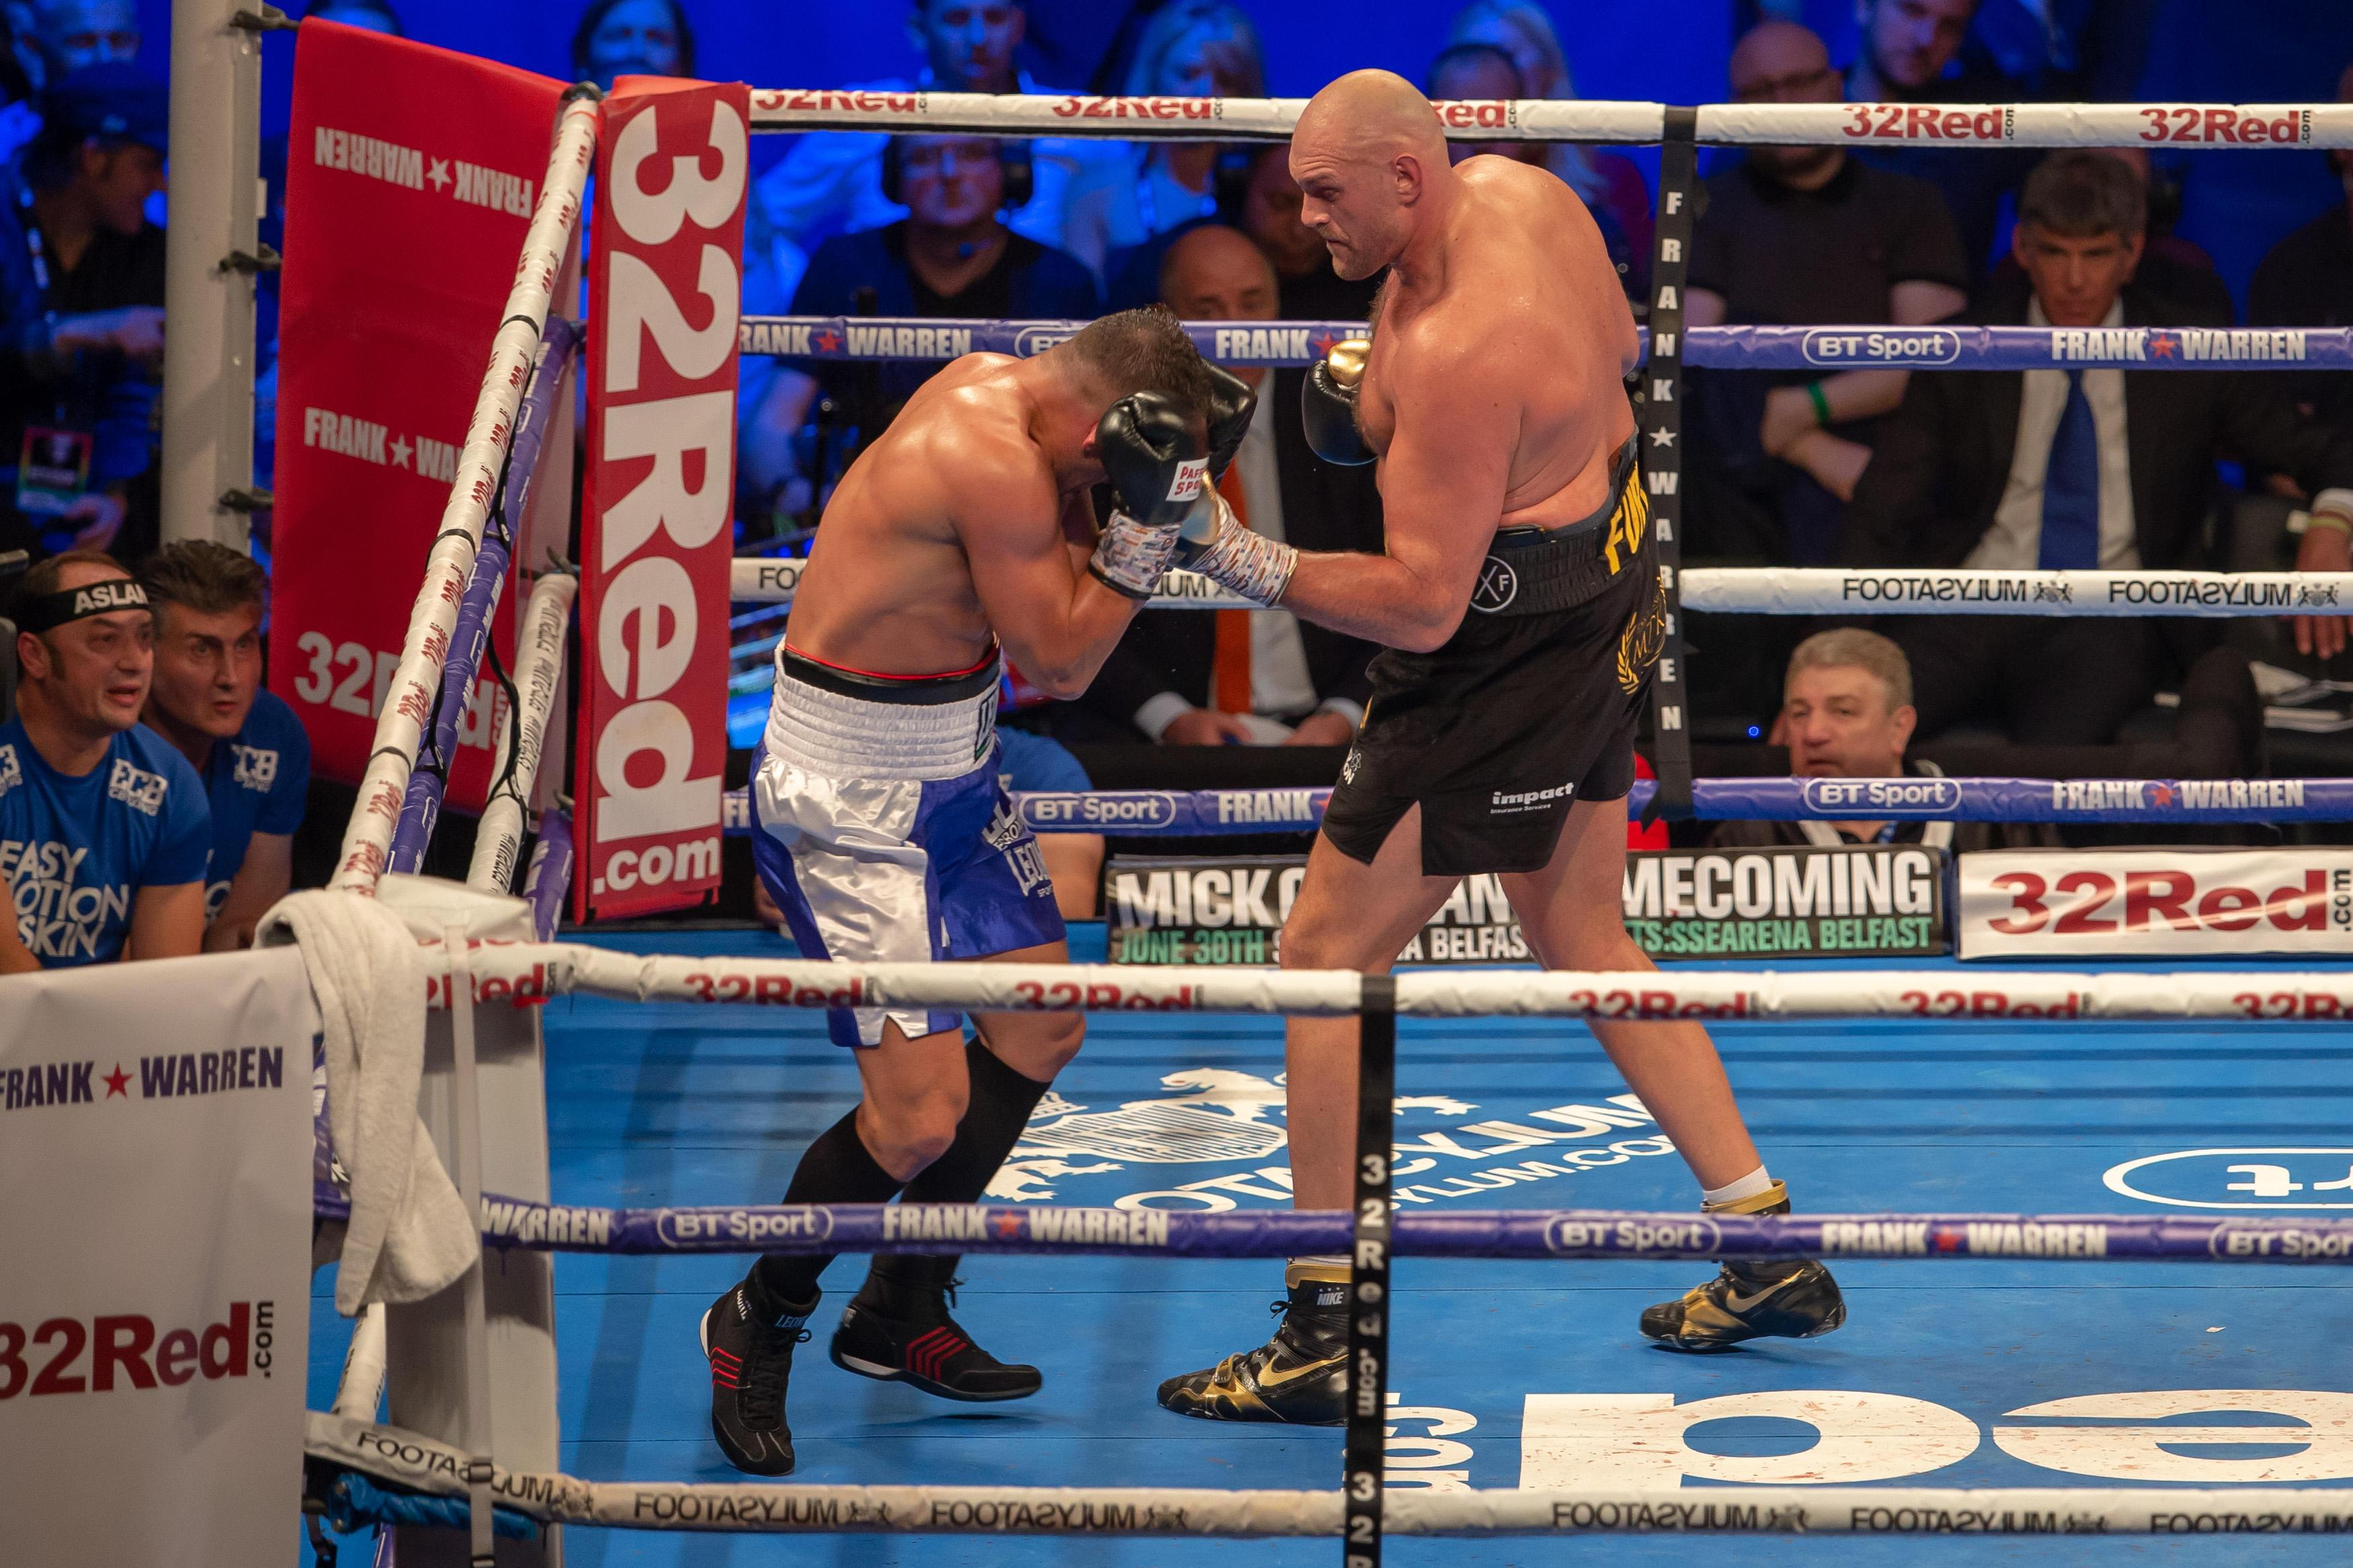 Fury, 29, is reportedly in discussions with Deontay Wilder over a fight in late 2018